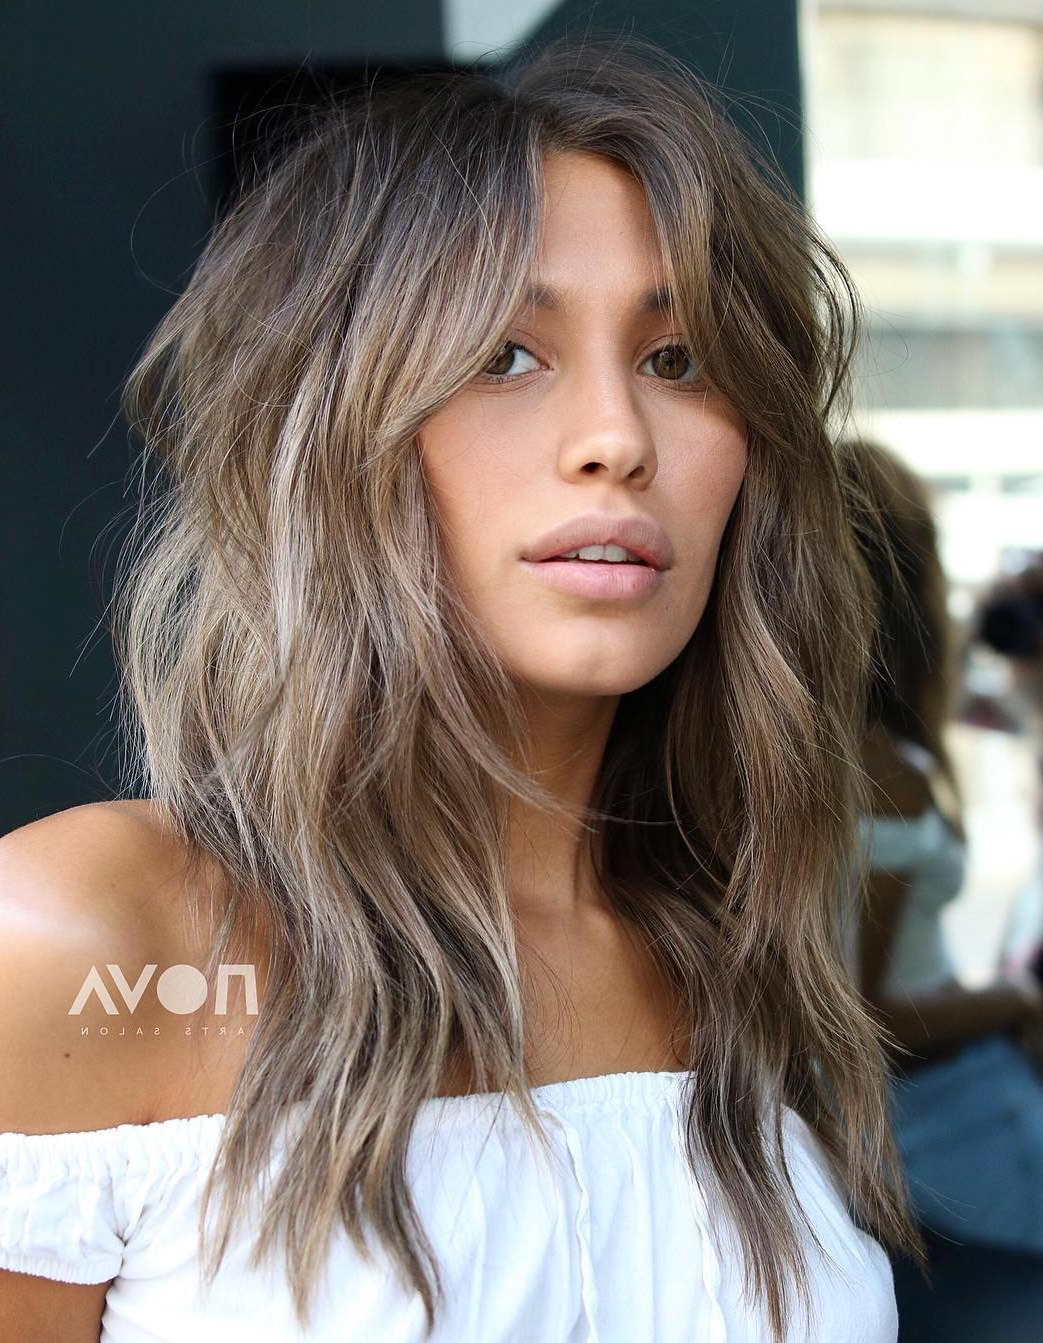 Fashionable Elongated Razored Straight Shag Haircuts With Bangs With 40 Modern Shag Haircuts For Women To Make A Splash (View 12 of 20)